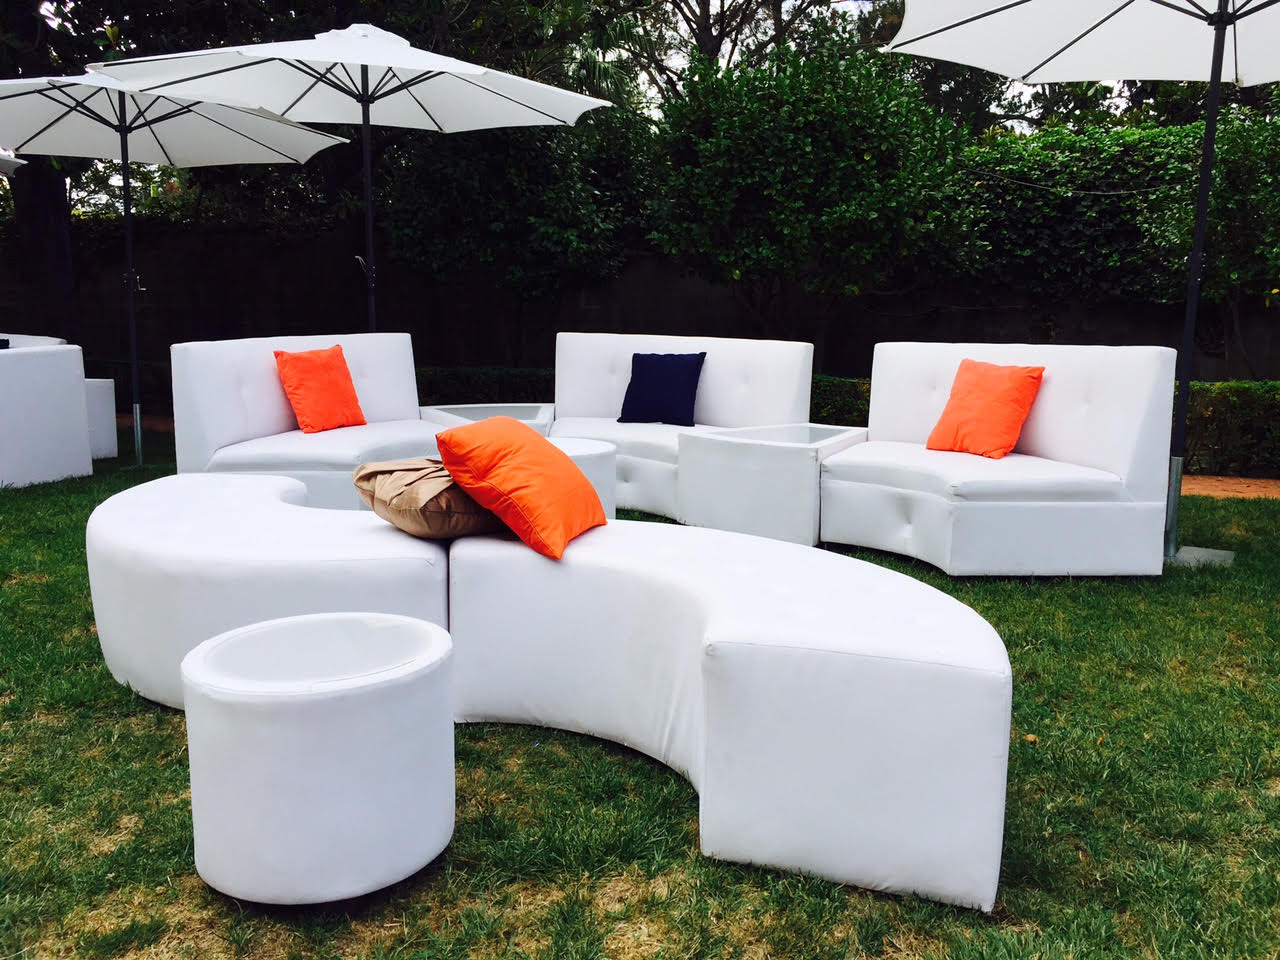 Lounge 4 Events Furniture and Decor Rental